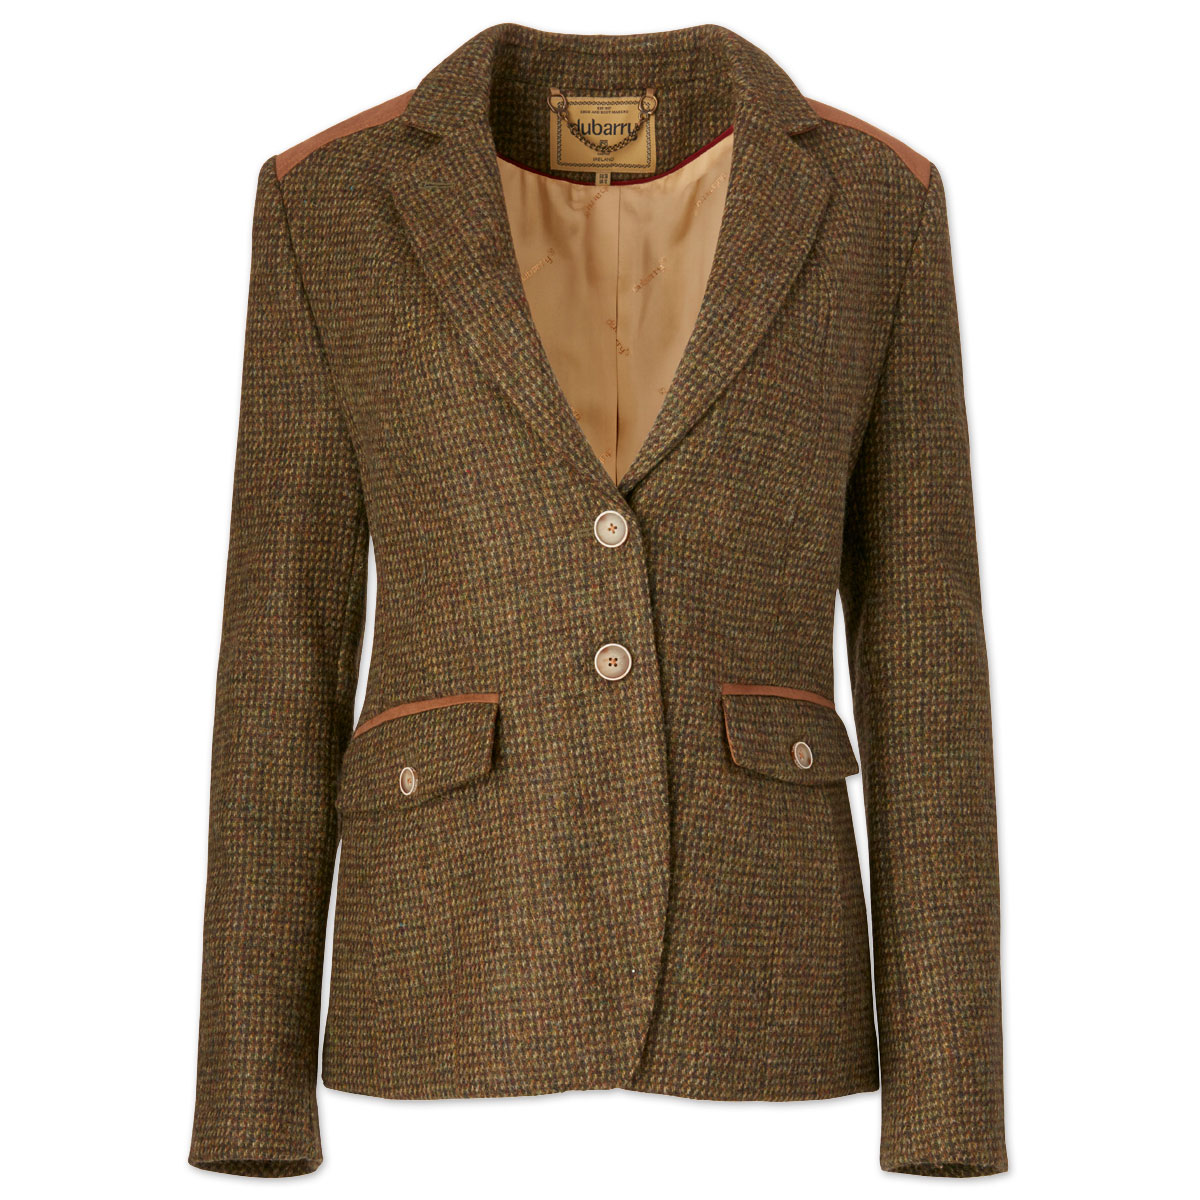 Dubarry Pearlwort Jacket